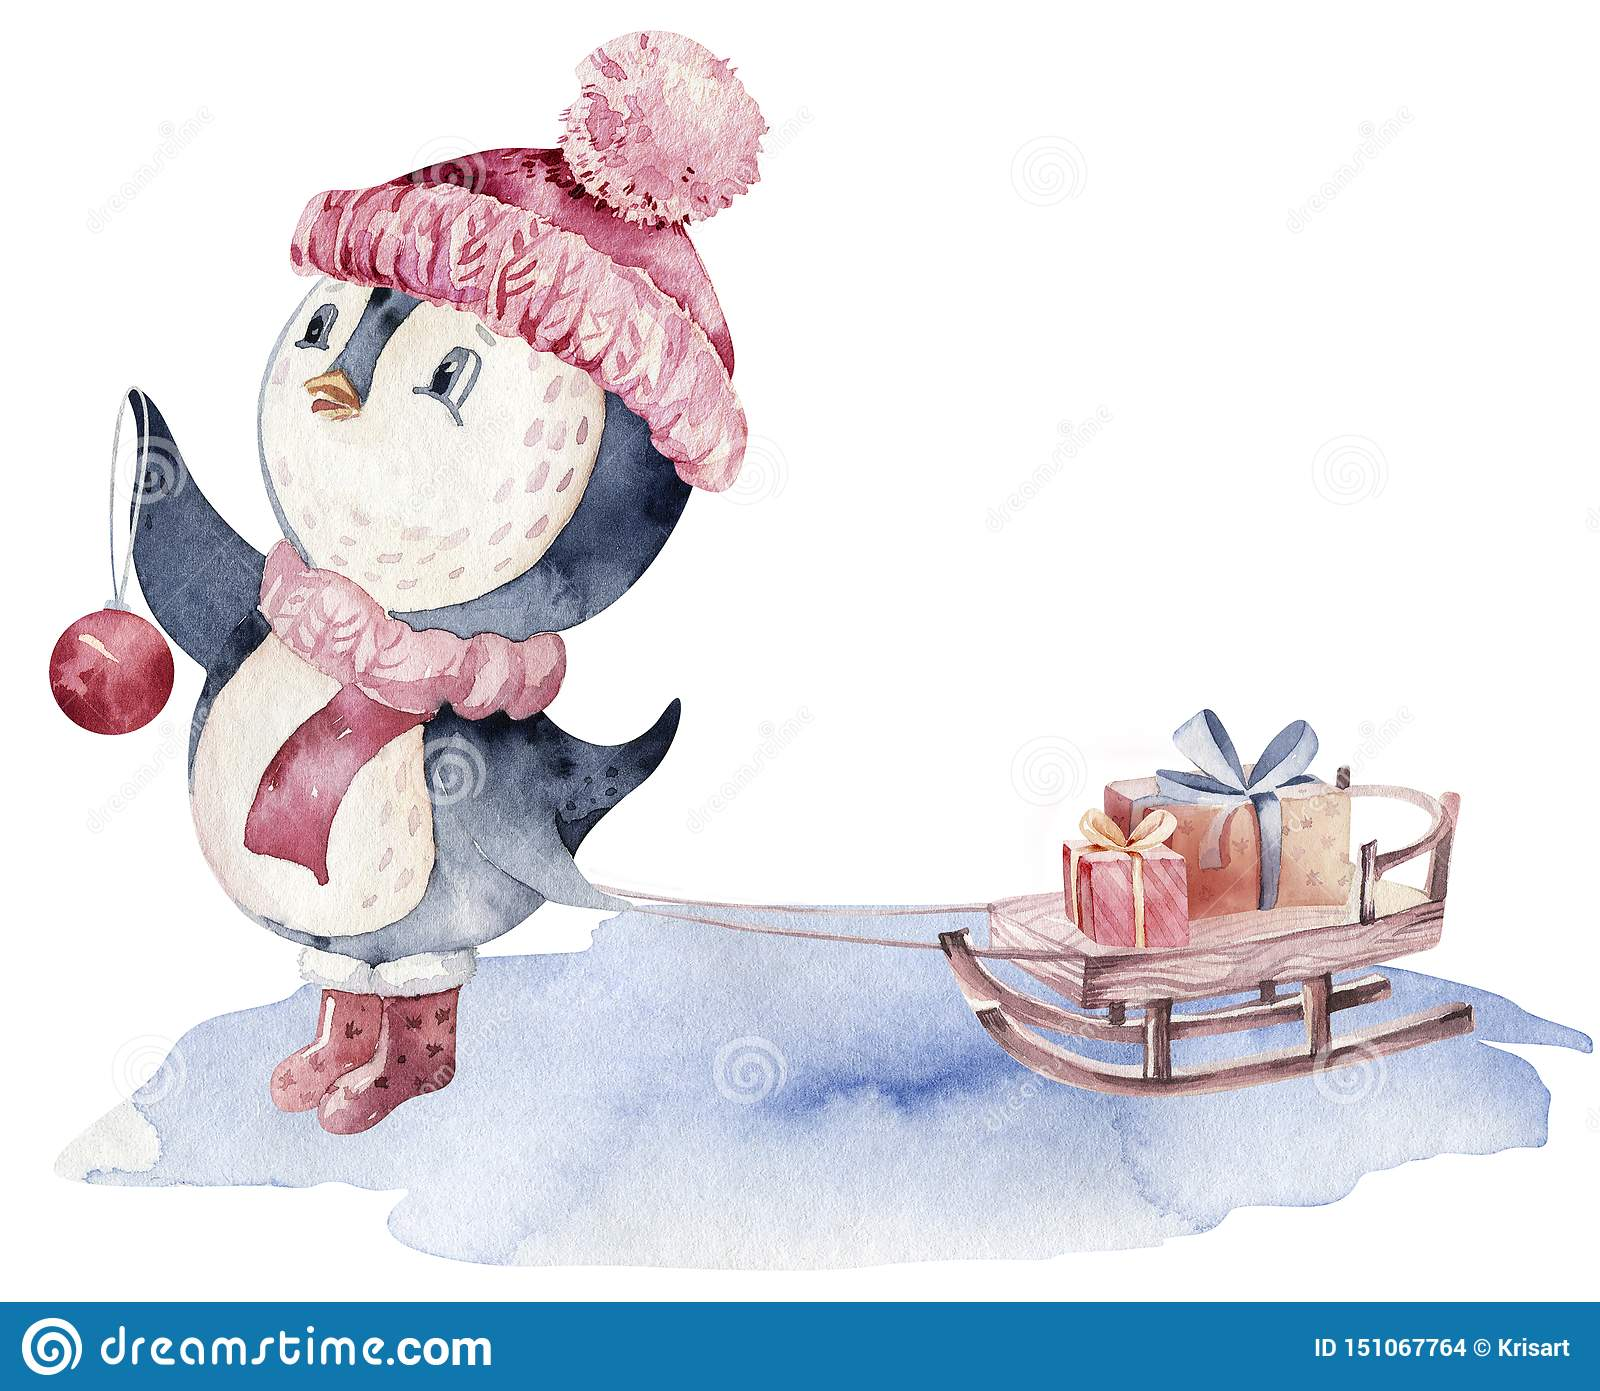 Watercolor merry christmas character penguin illustration. Winter cartoon isolated cute funny animal design card. Snow